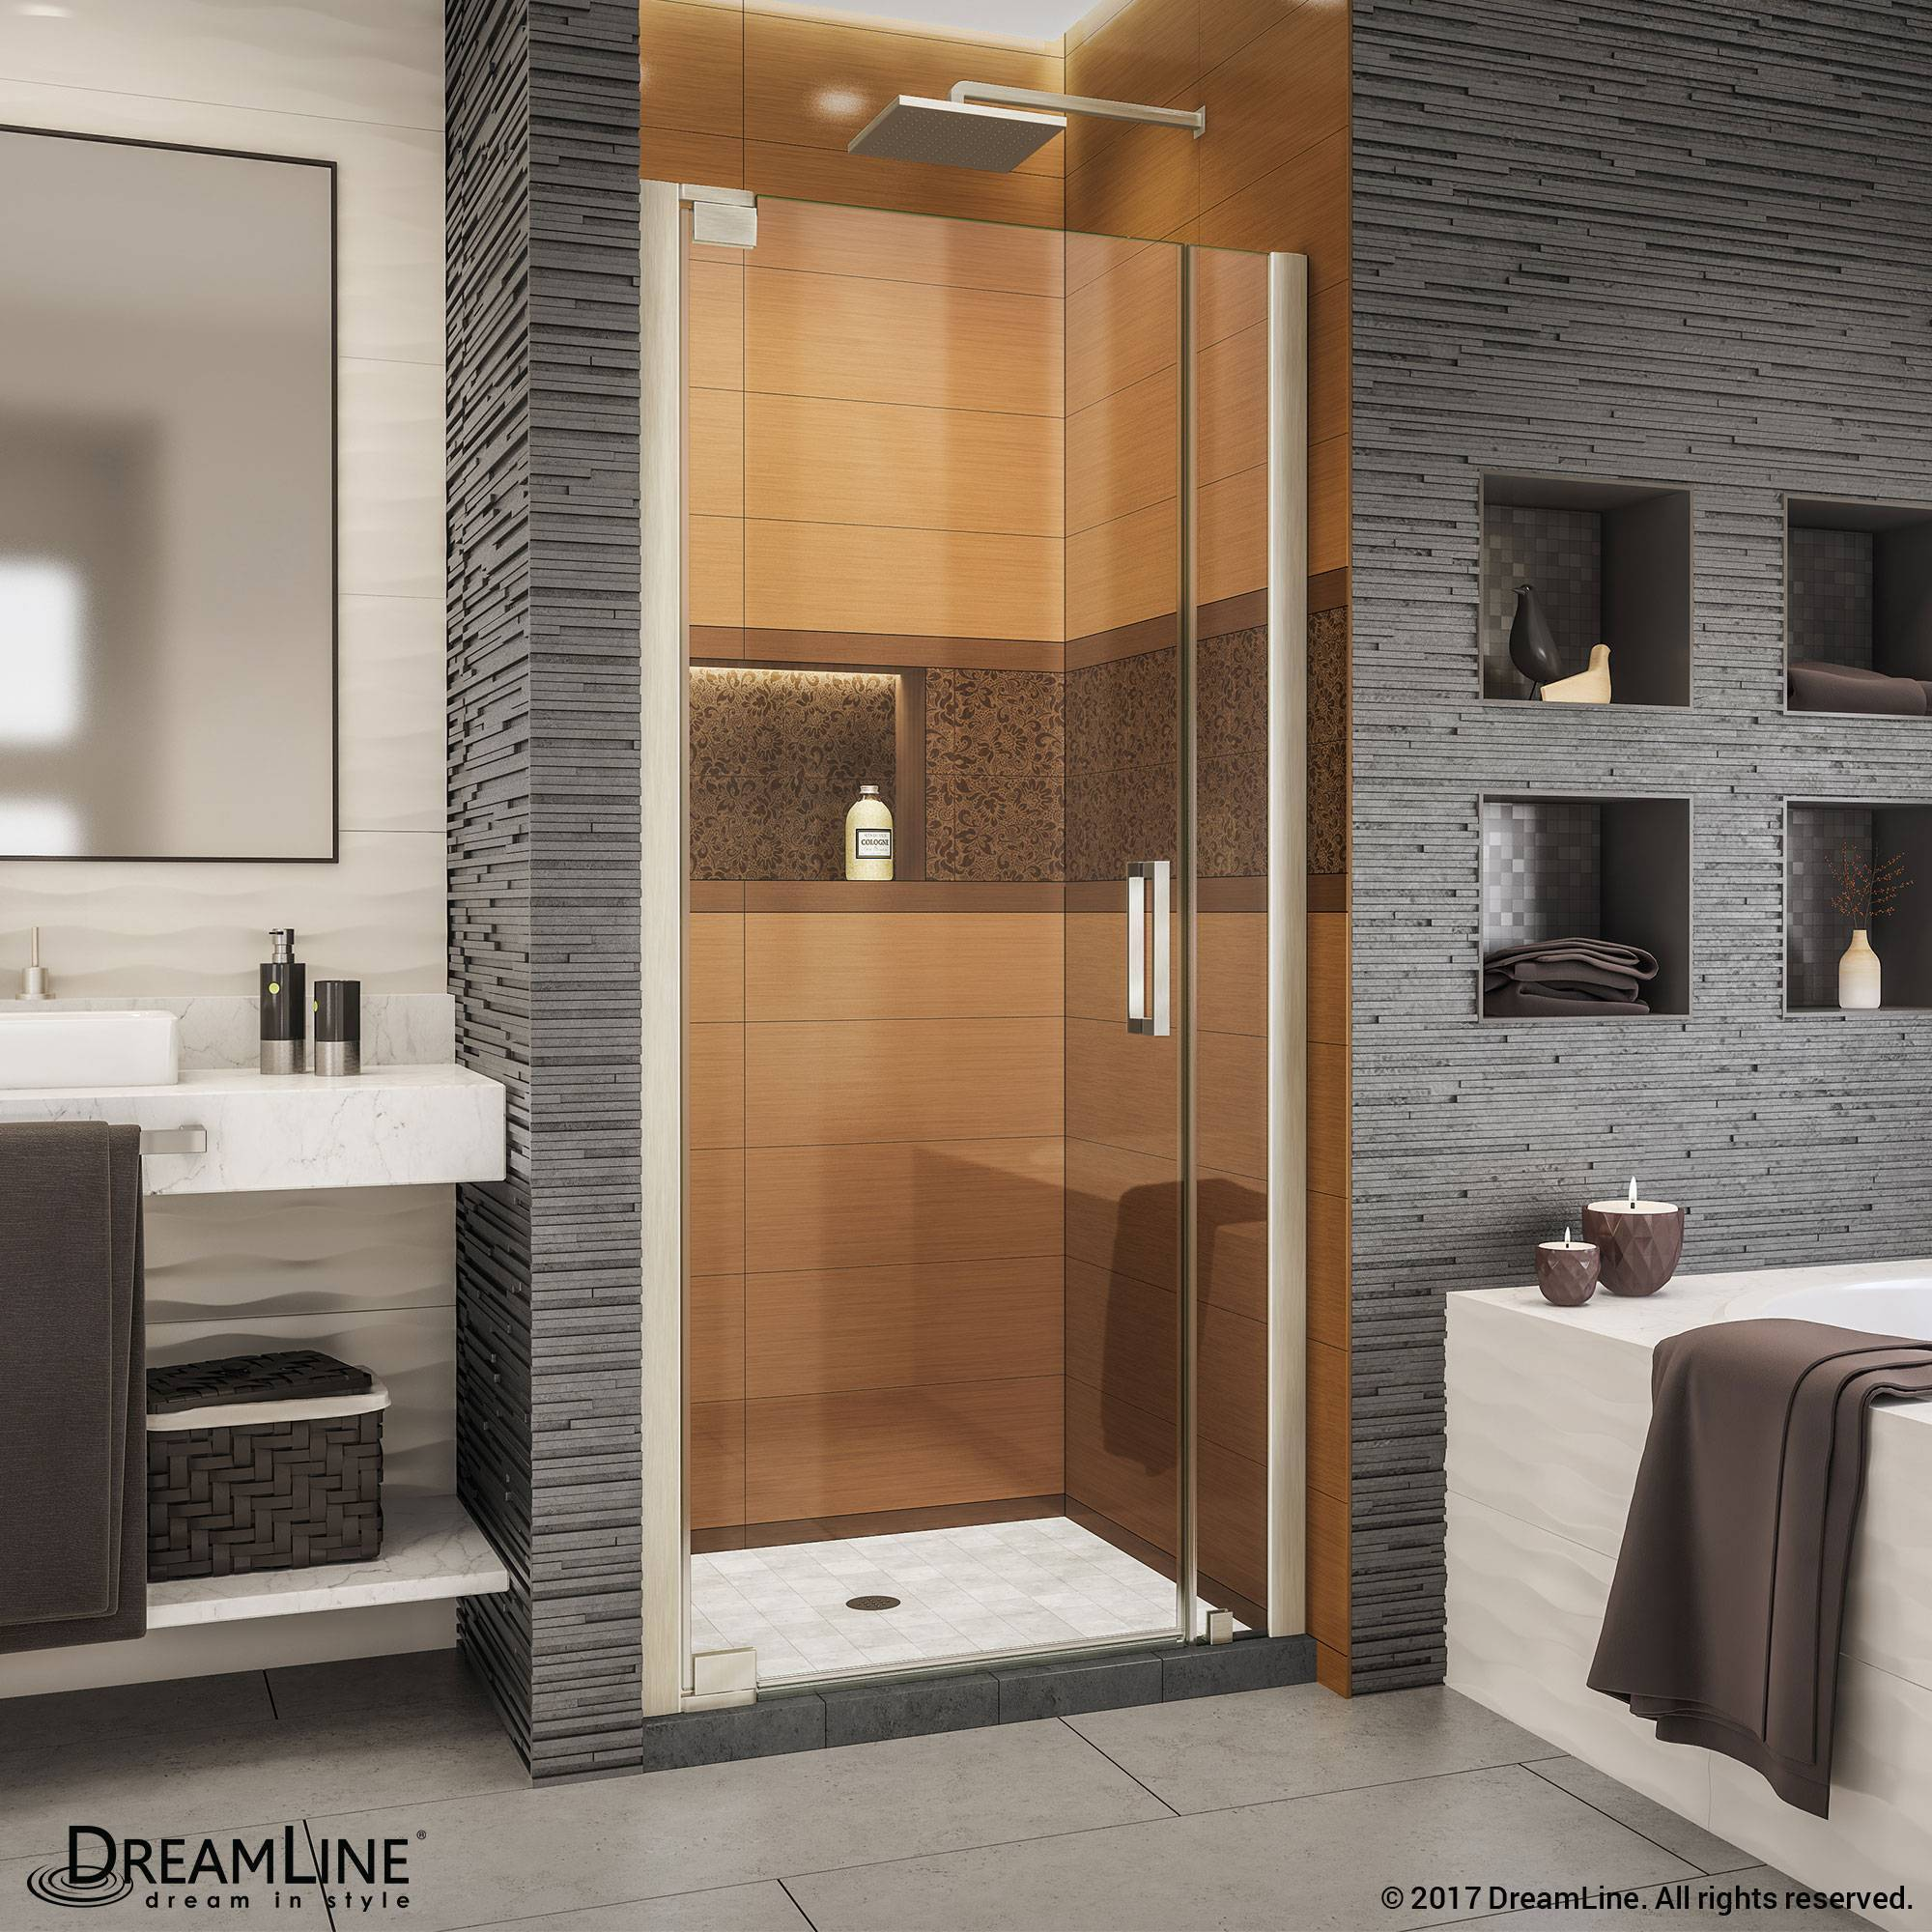 DreamLine Elegance Pivot Shower Door